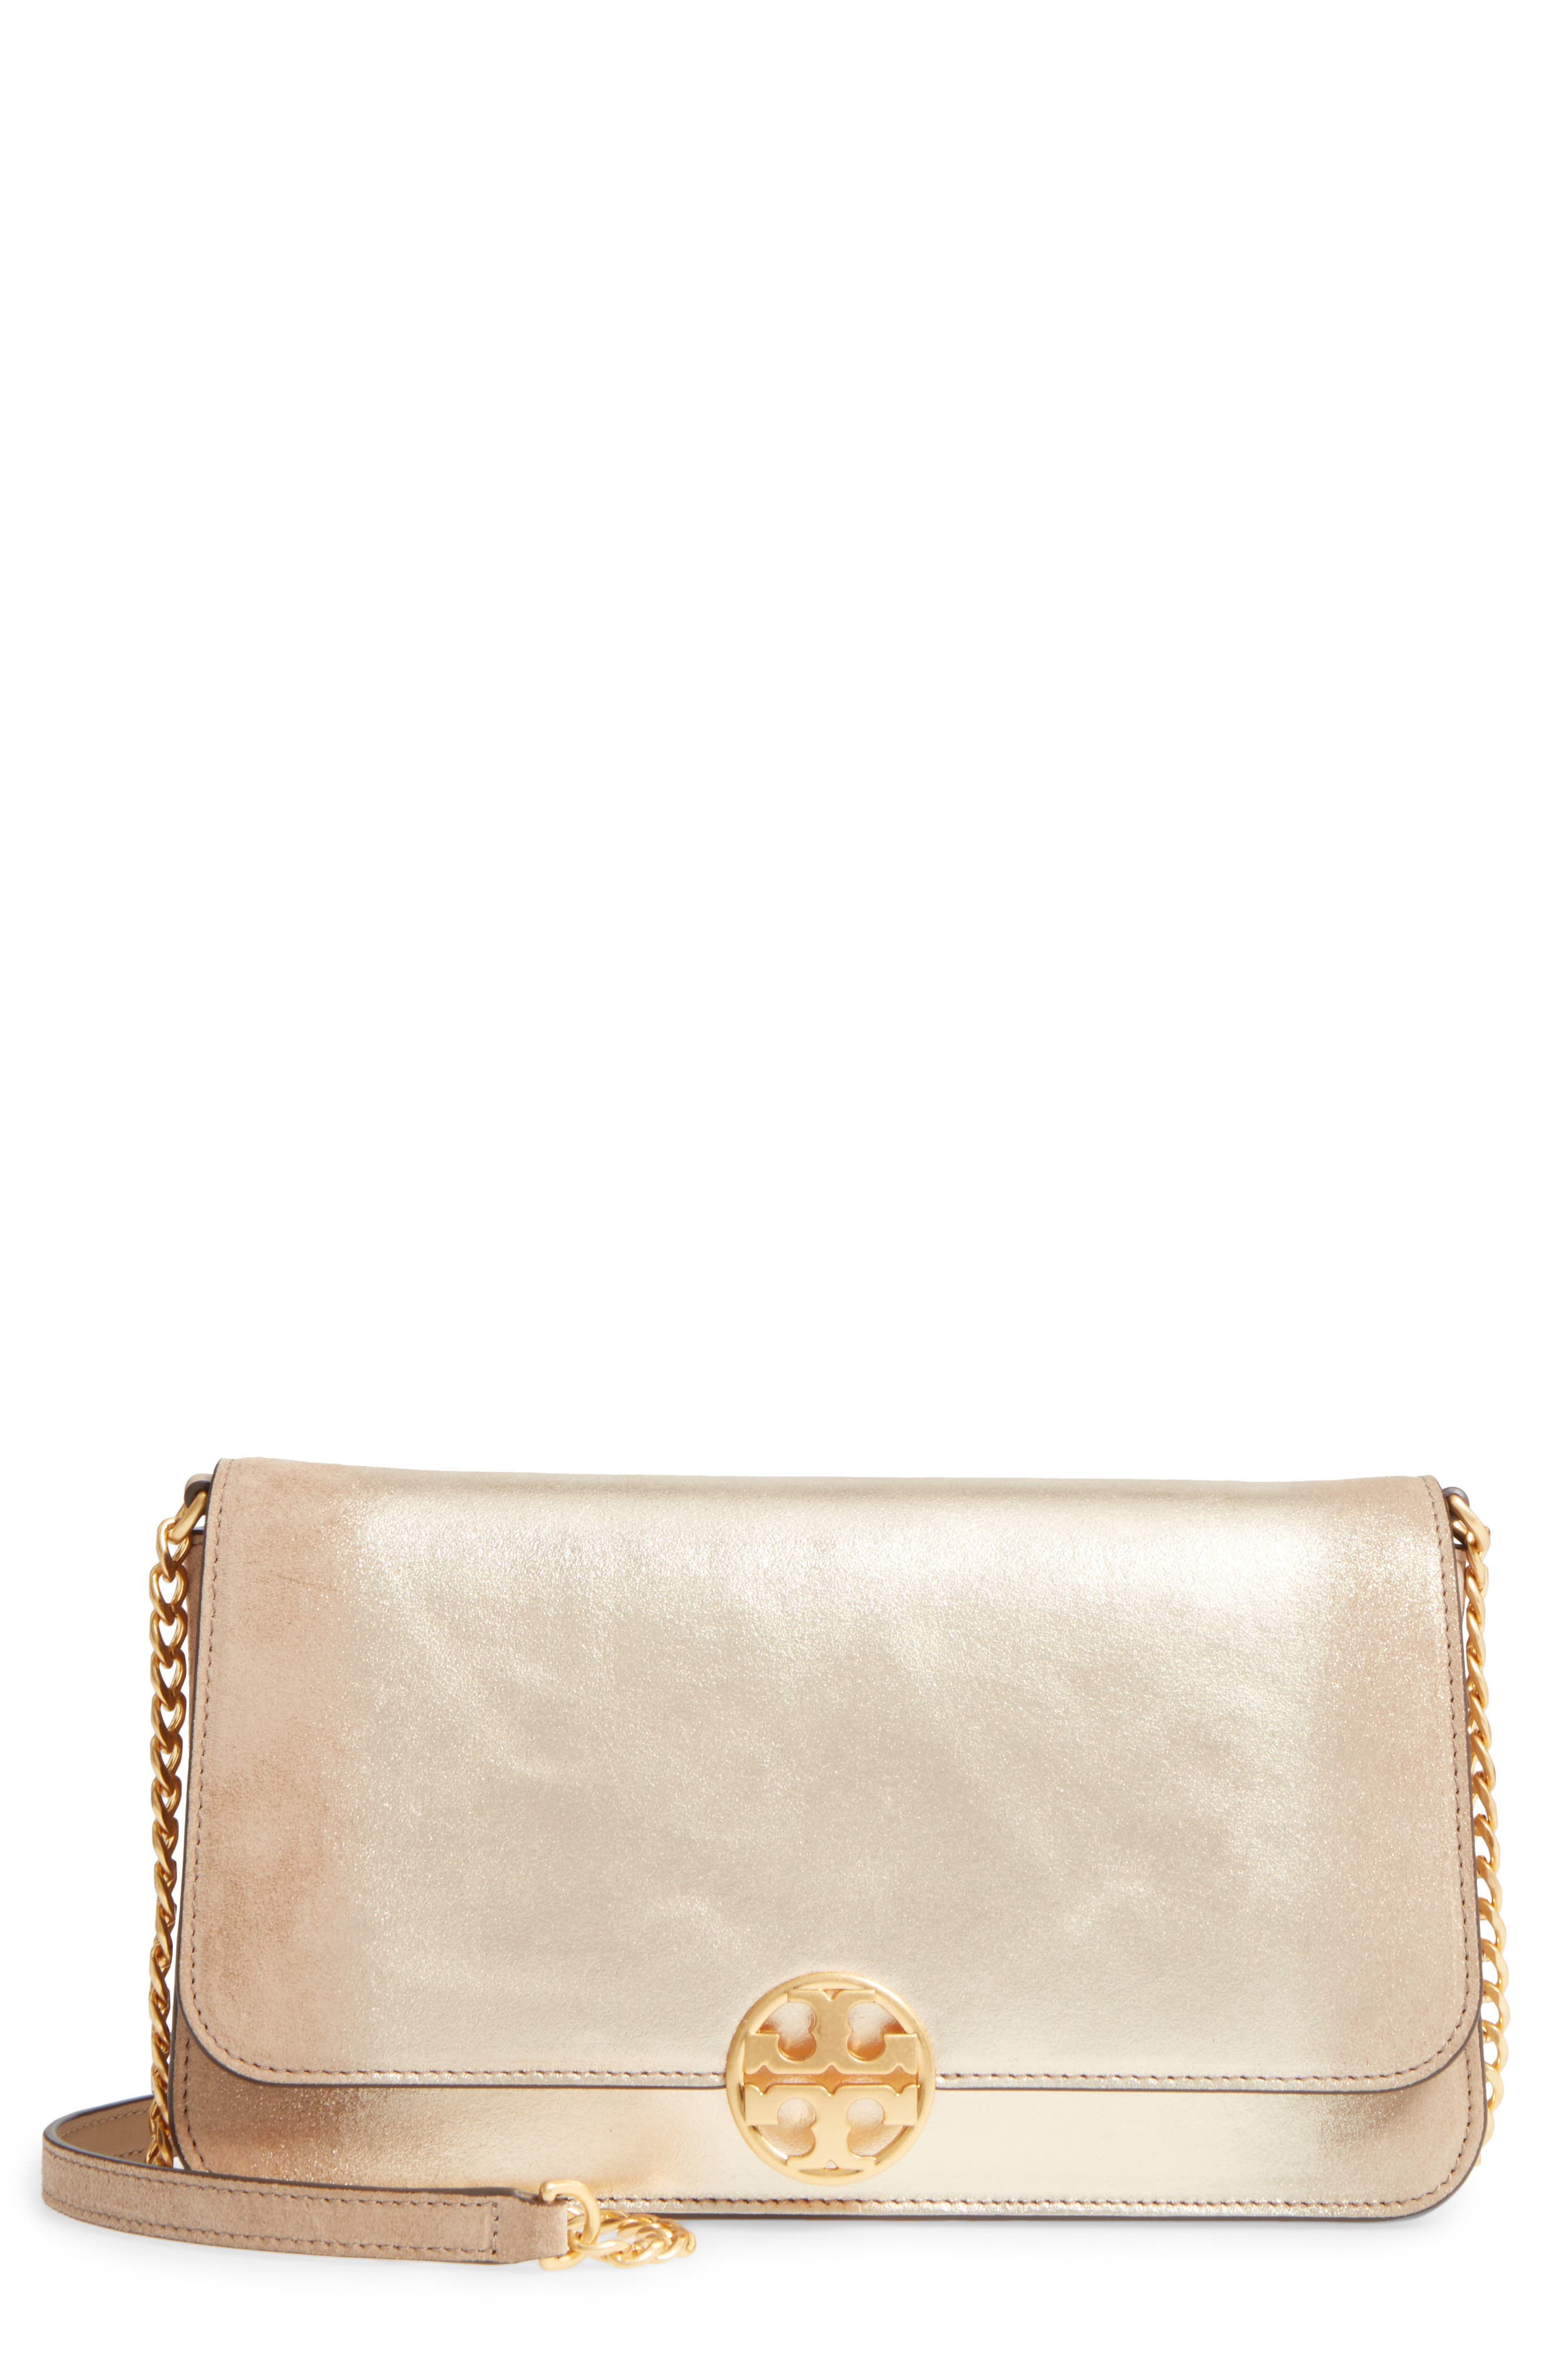 Main Image - Tory Burch Chelsea Convertible Metallic Leather Clutch